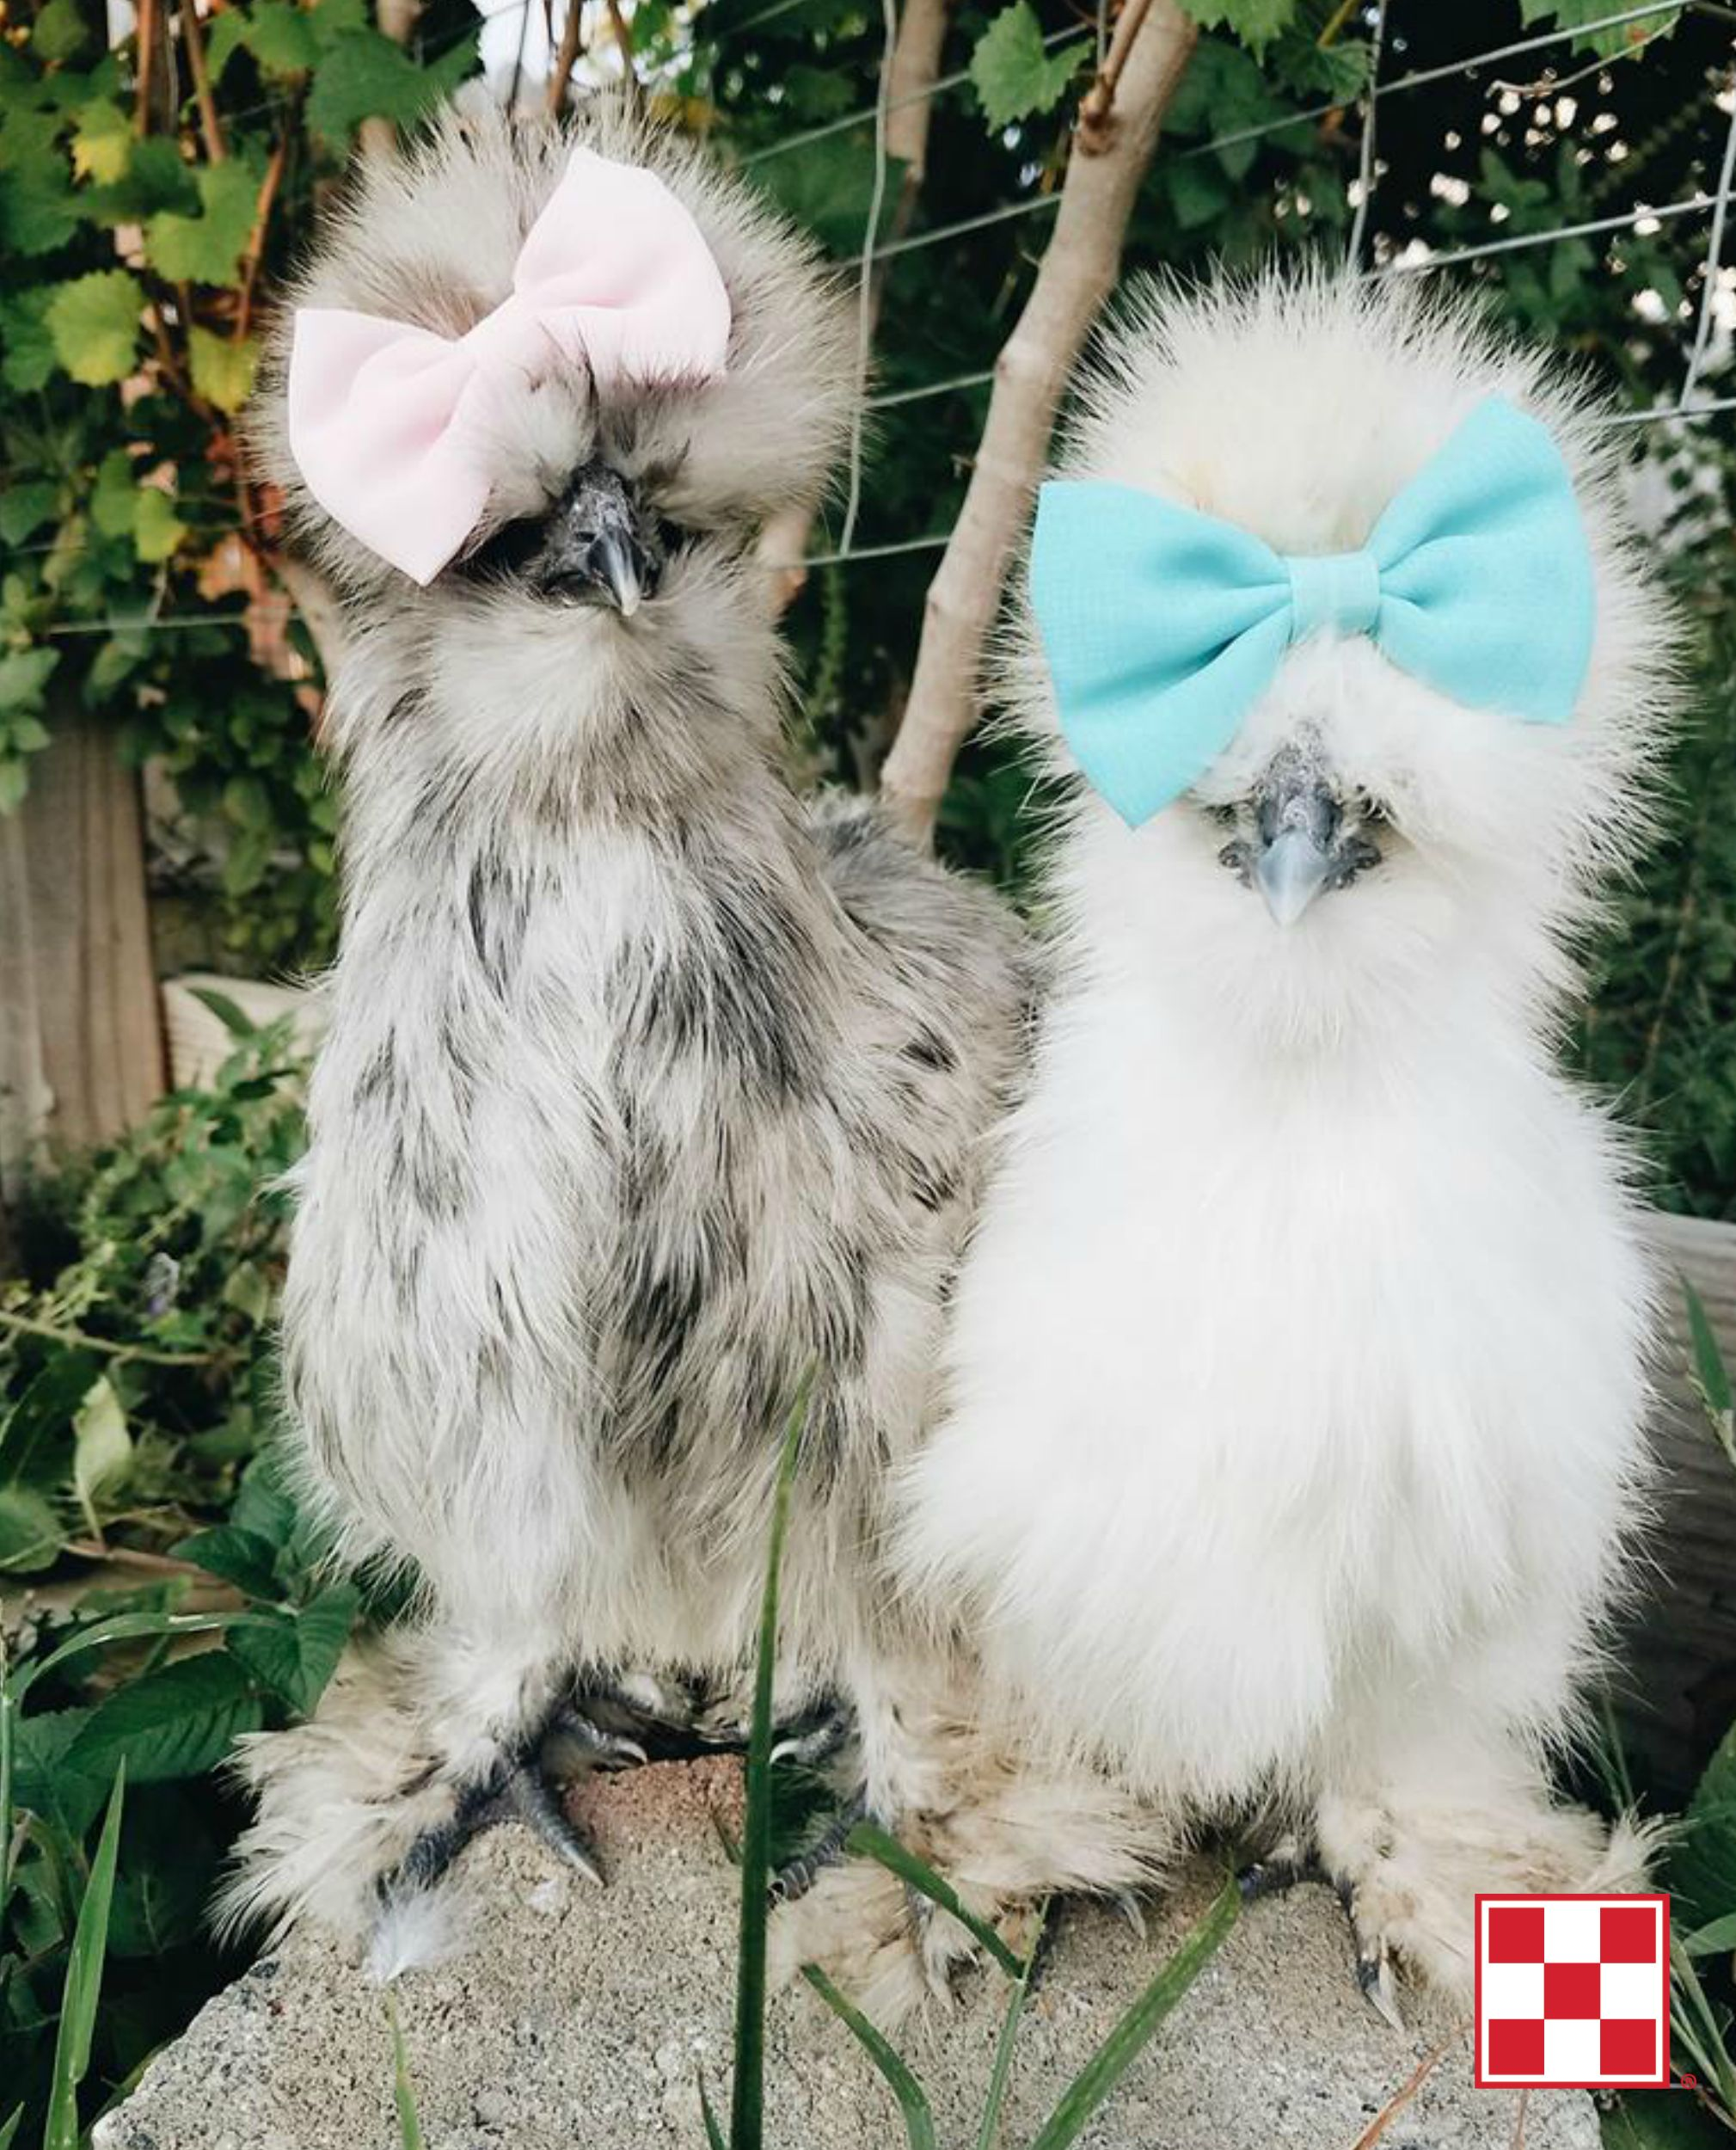 Just To Make You Smile Two Fashionable Silkies Photo By Purina Poultry Facebook Fan Katie G Cute Chickens Pet Chickens Fancy Chickens